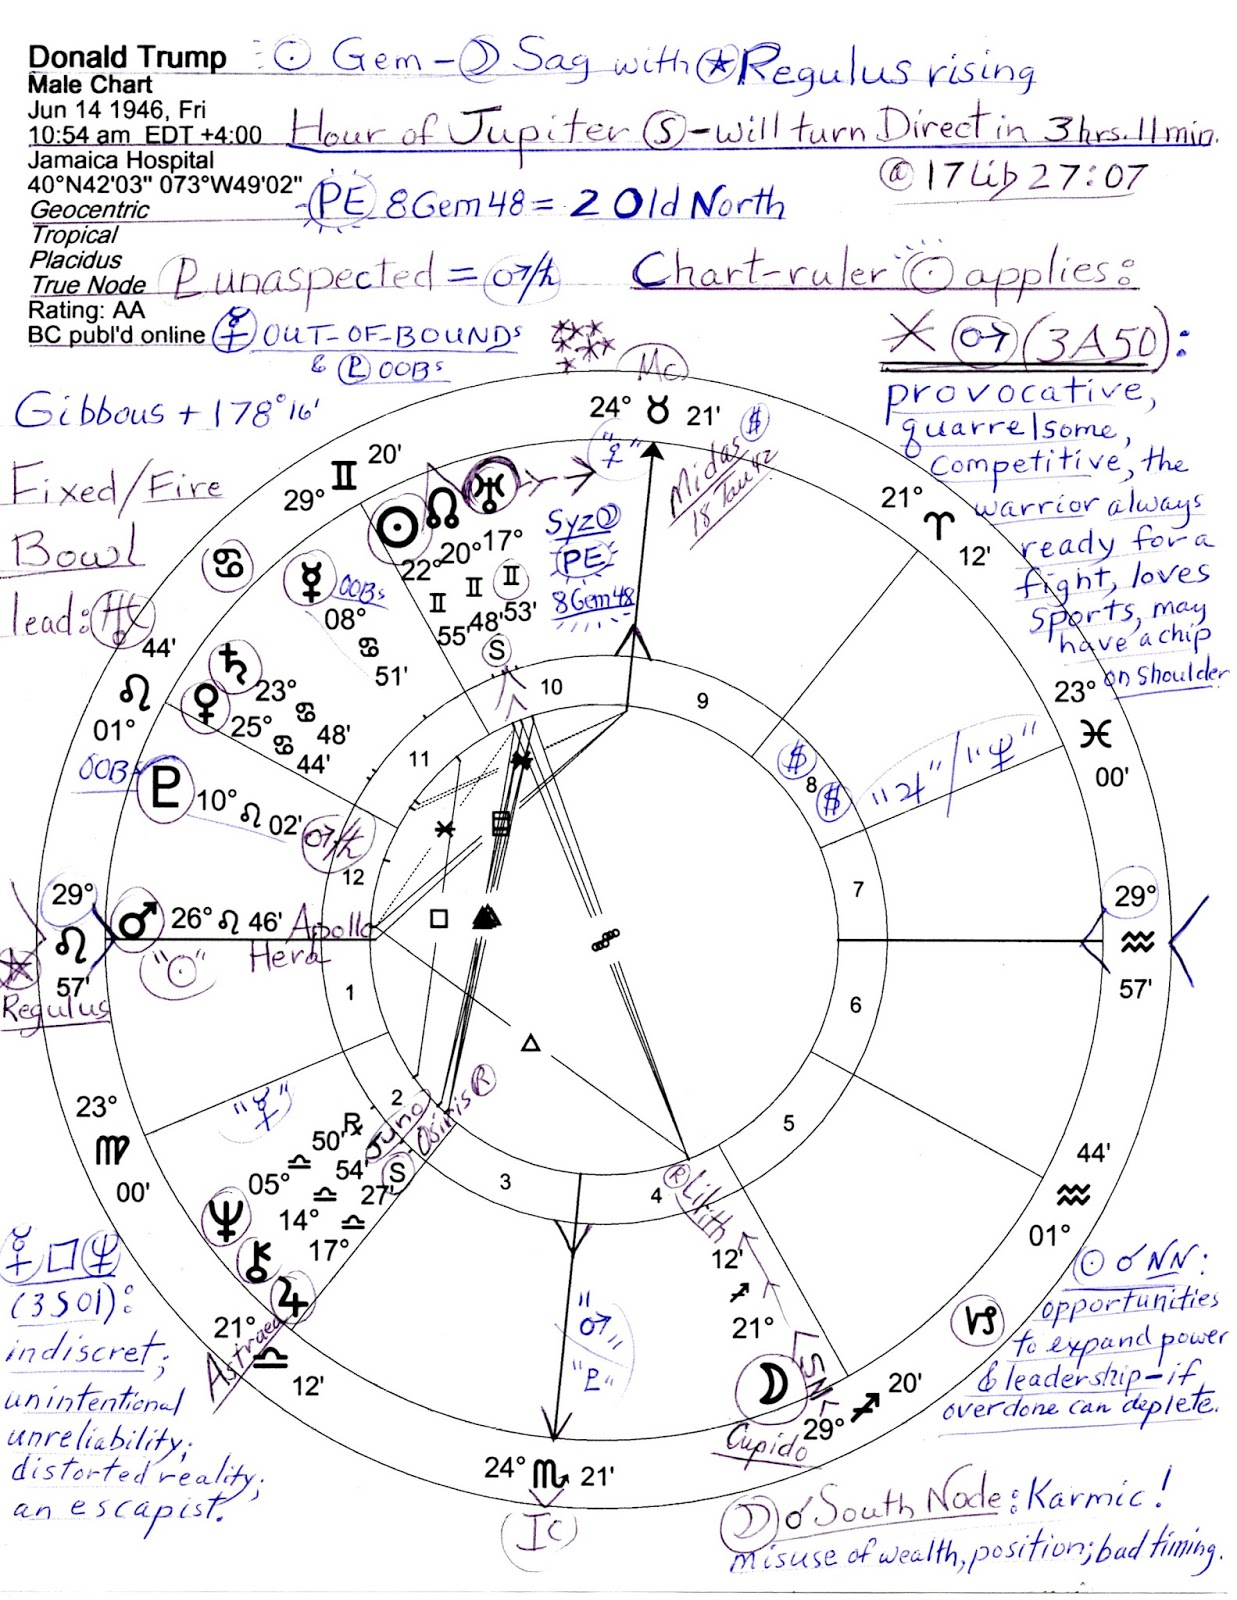 Stars over washington december 2016 astro notes on his natal chart part one chart shown and part two with his sun moon personality blend nvjuhfo Choice Image